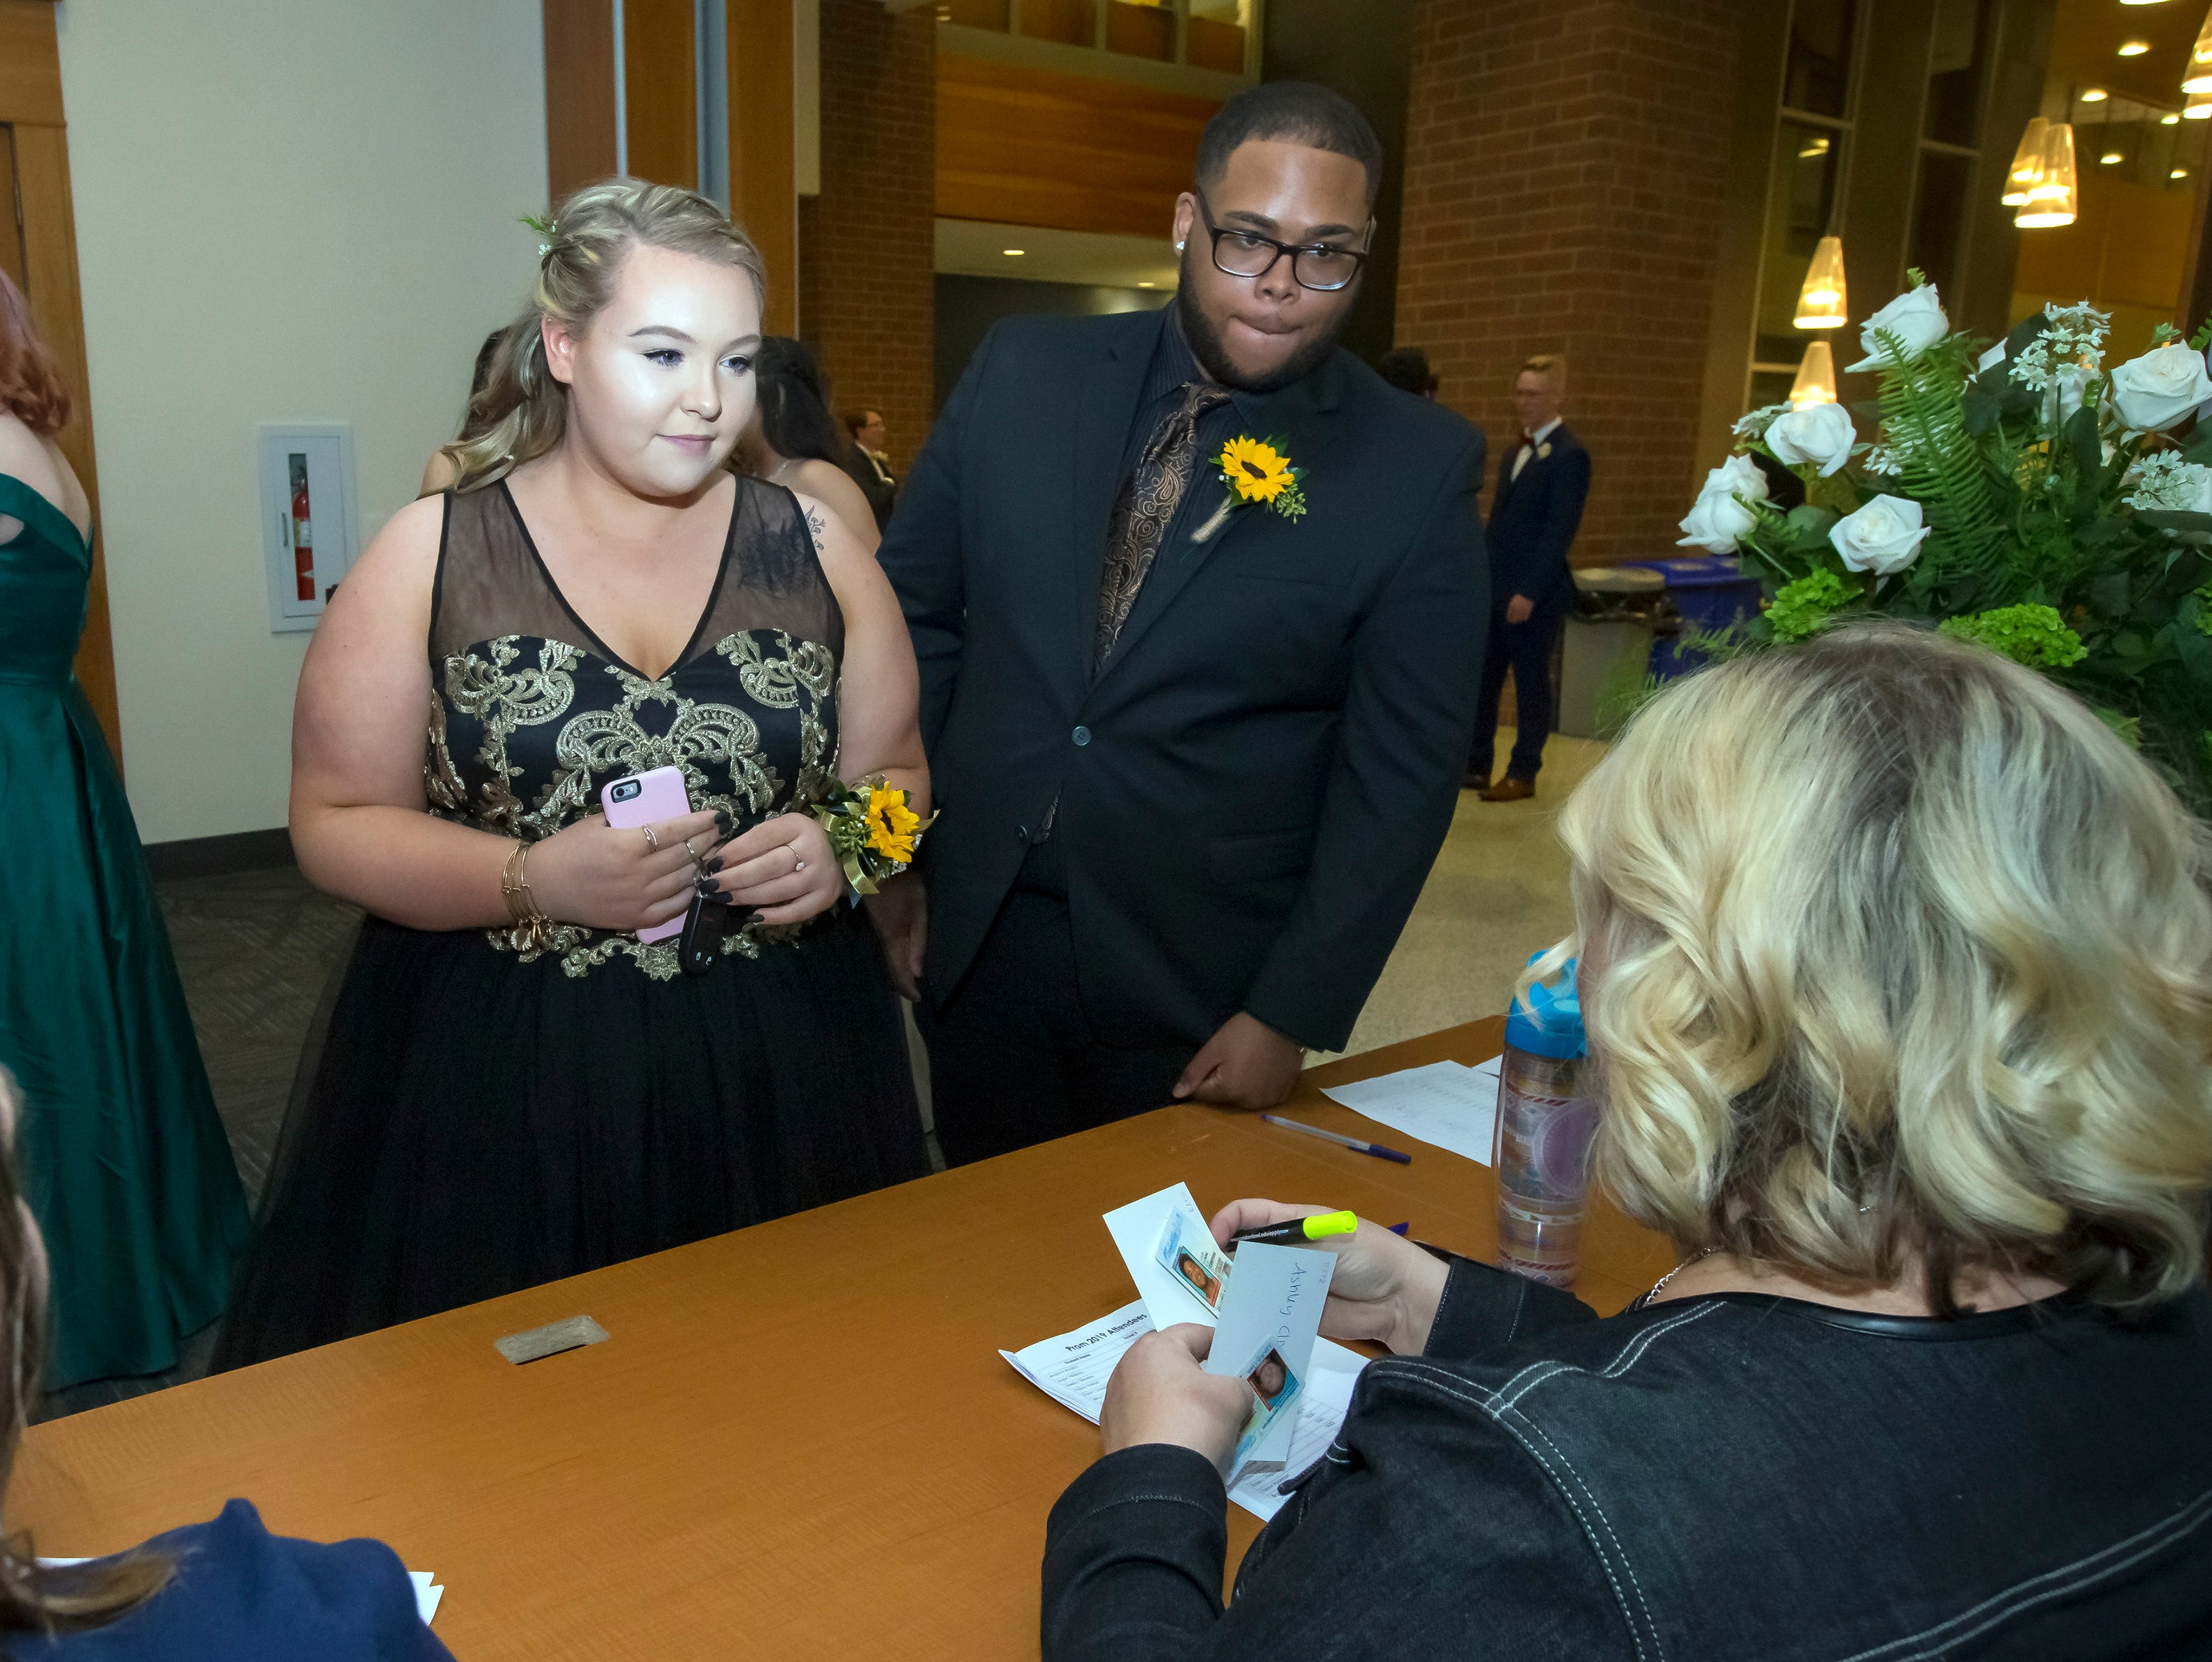 Checking in after arriving at the Stewarts Creek High School prom held at MTSU, Friday, April 5, 2019.JIM DAVIS/for the DNJ